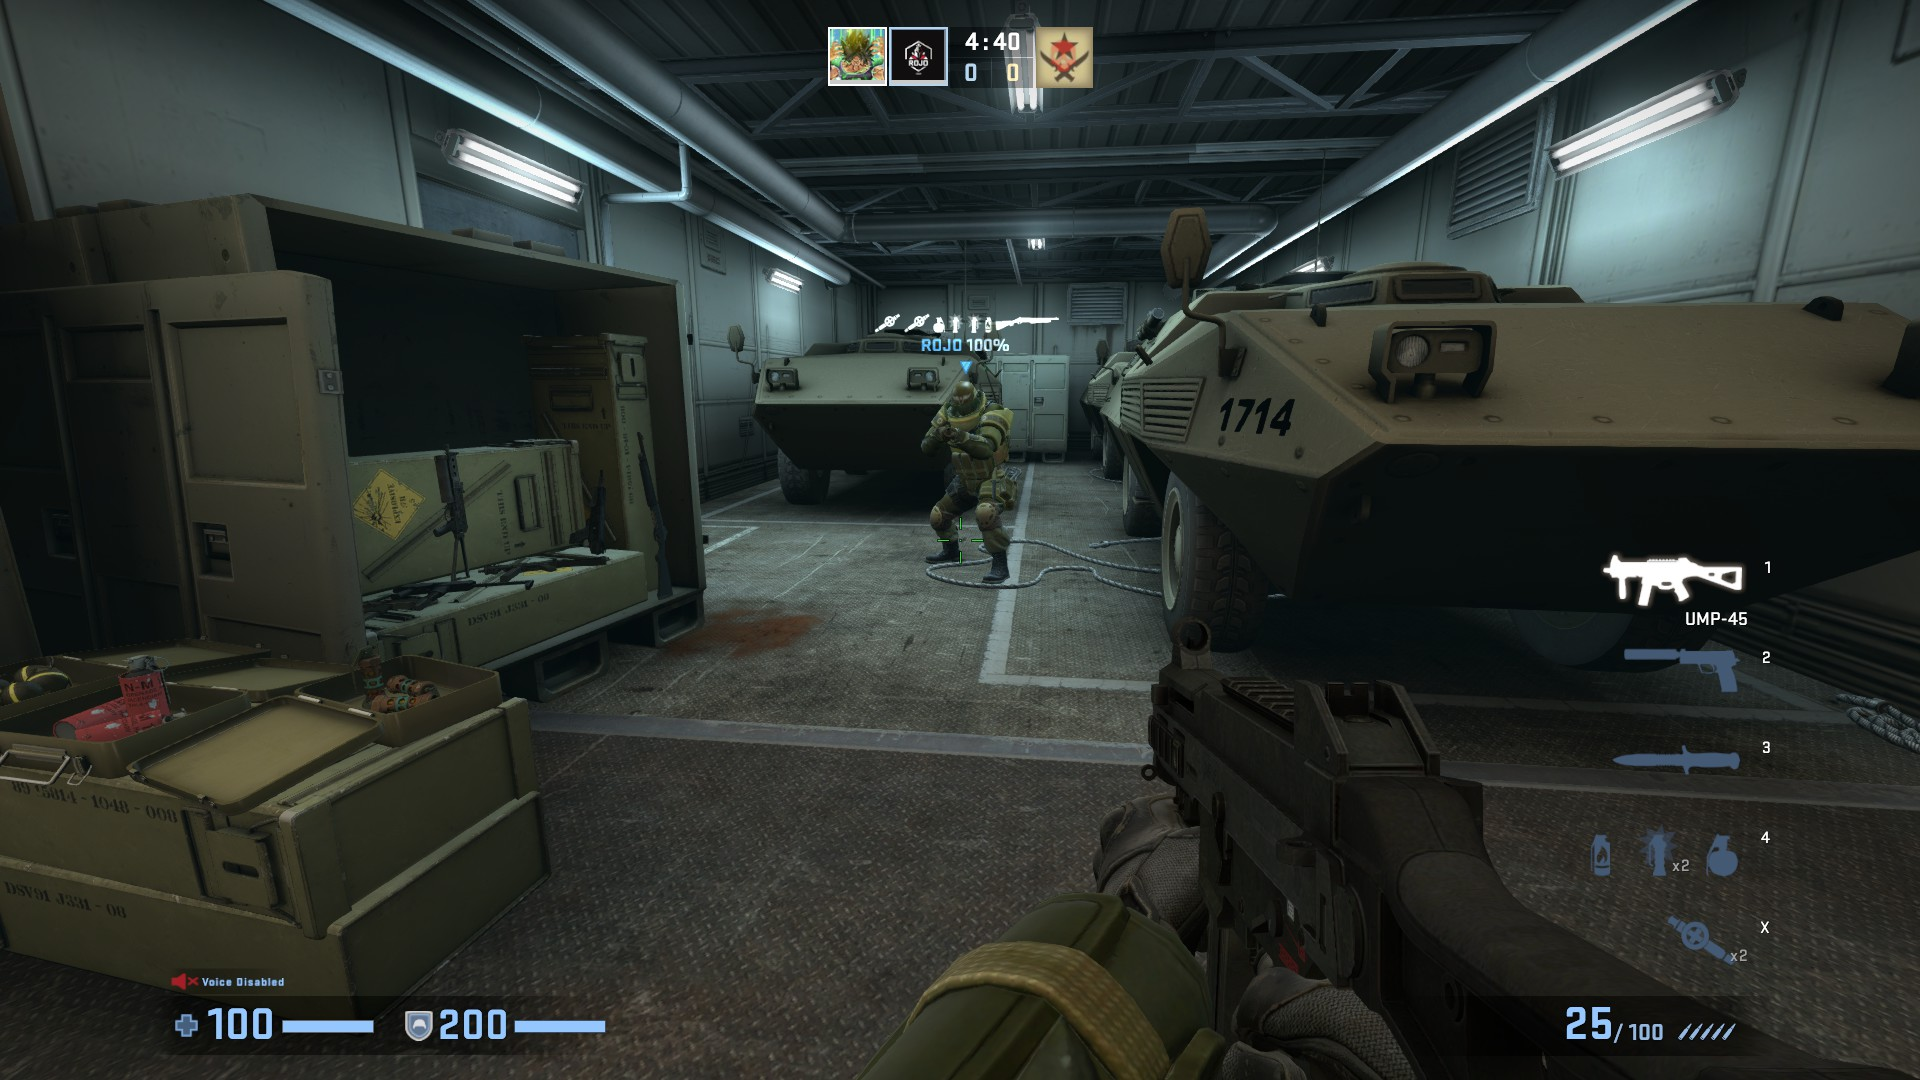 Counter-Strike: Global Offensive's mission system in